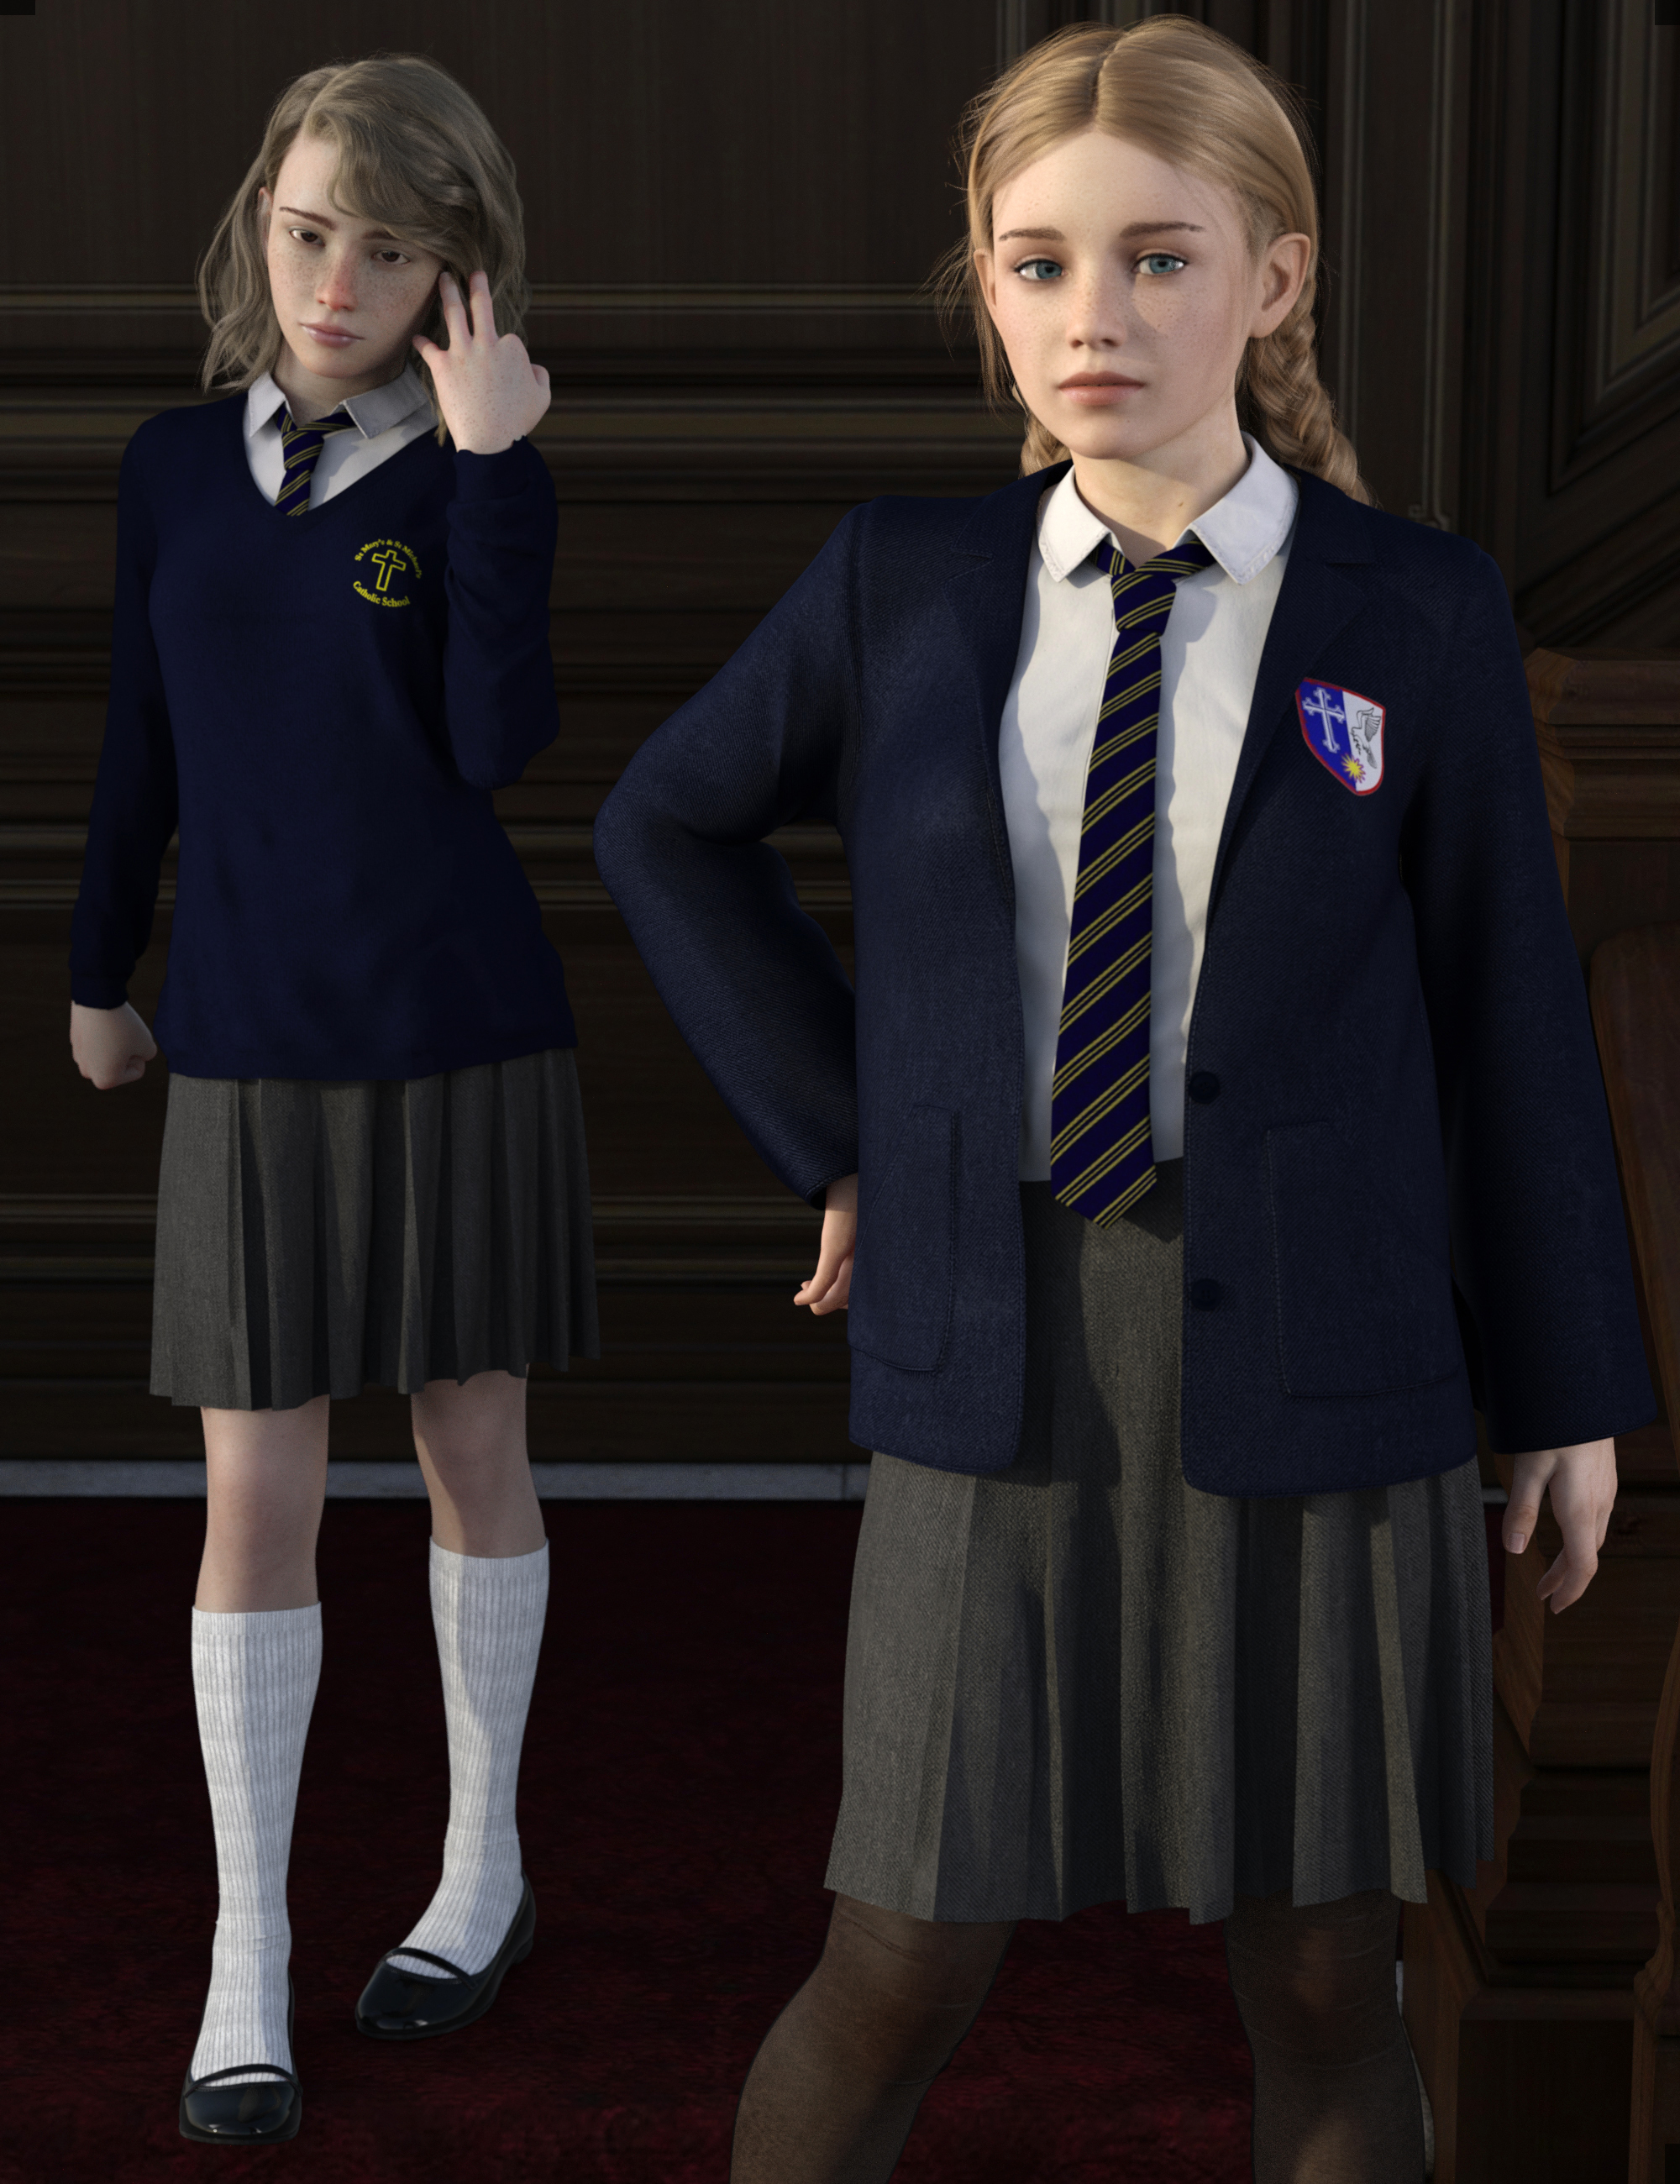 dForce Time For School for Genesis 8 Females by: Dogz, 3D Models by Daz 3D